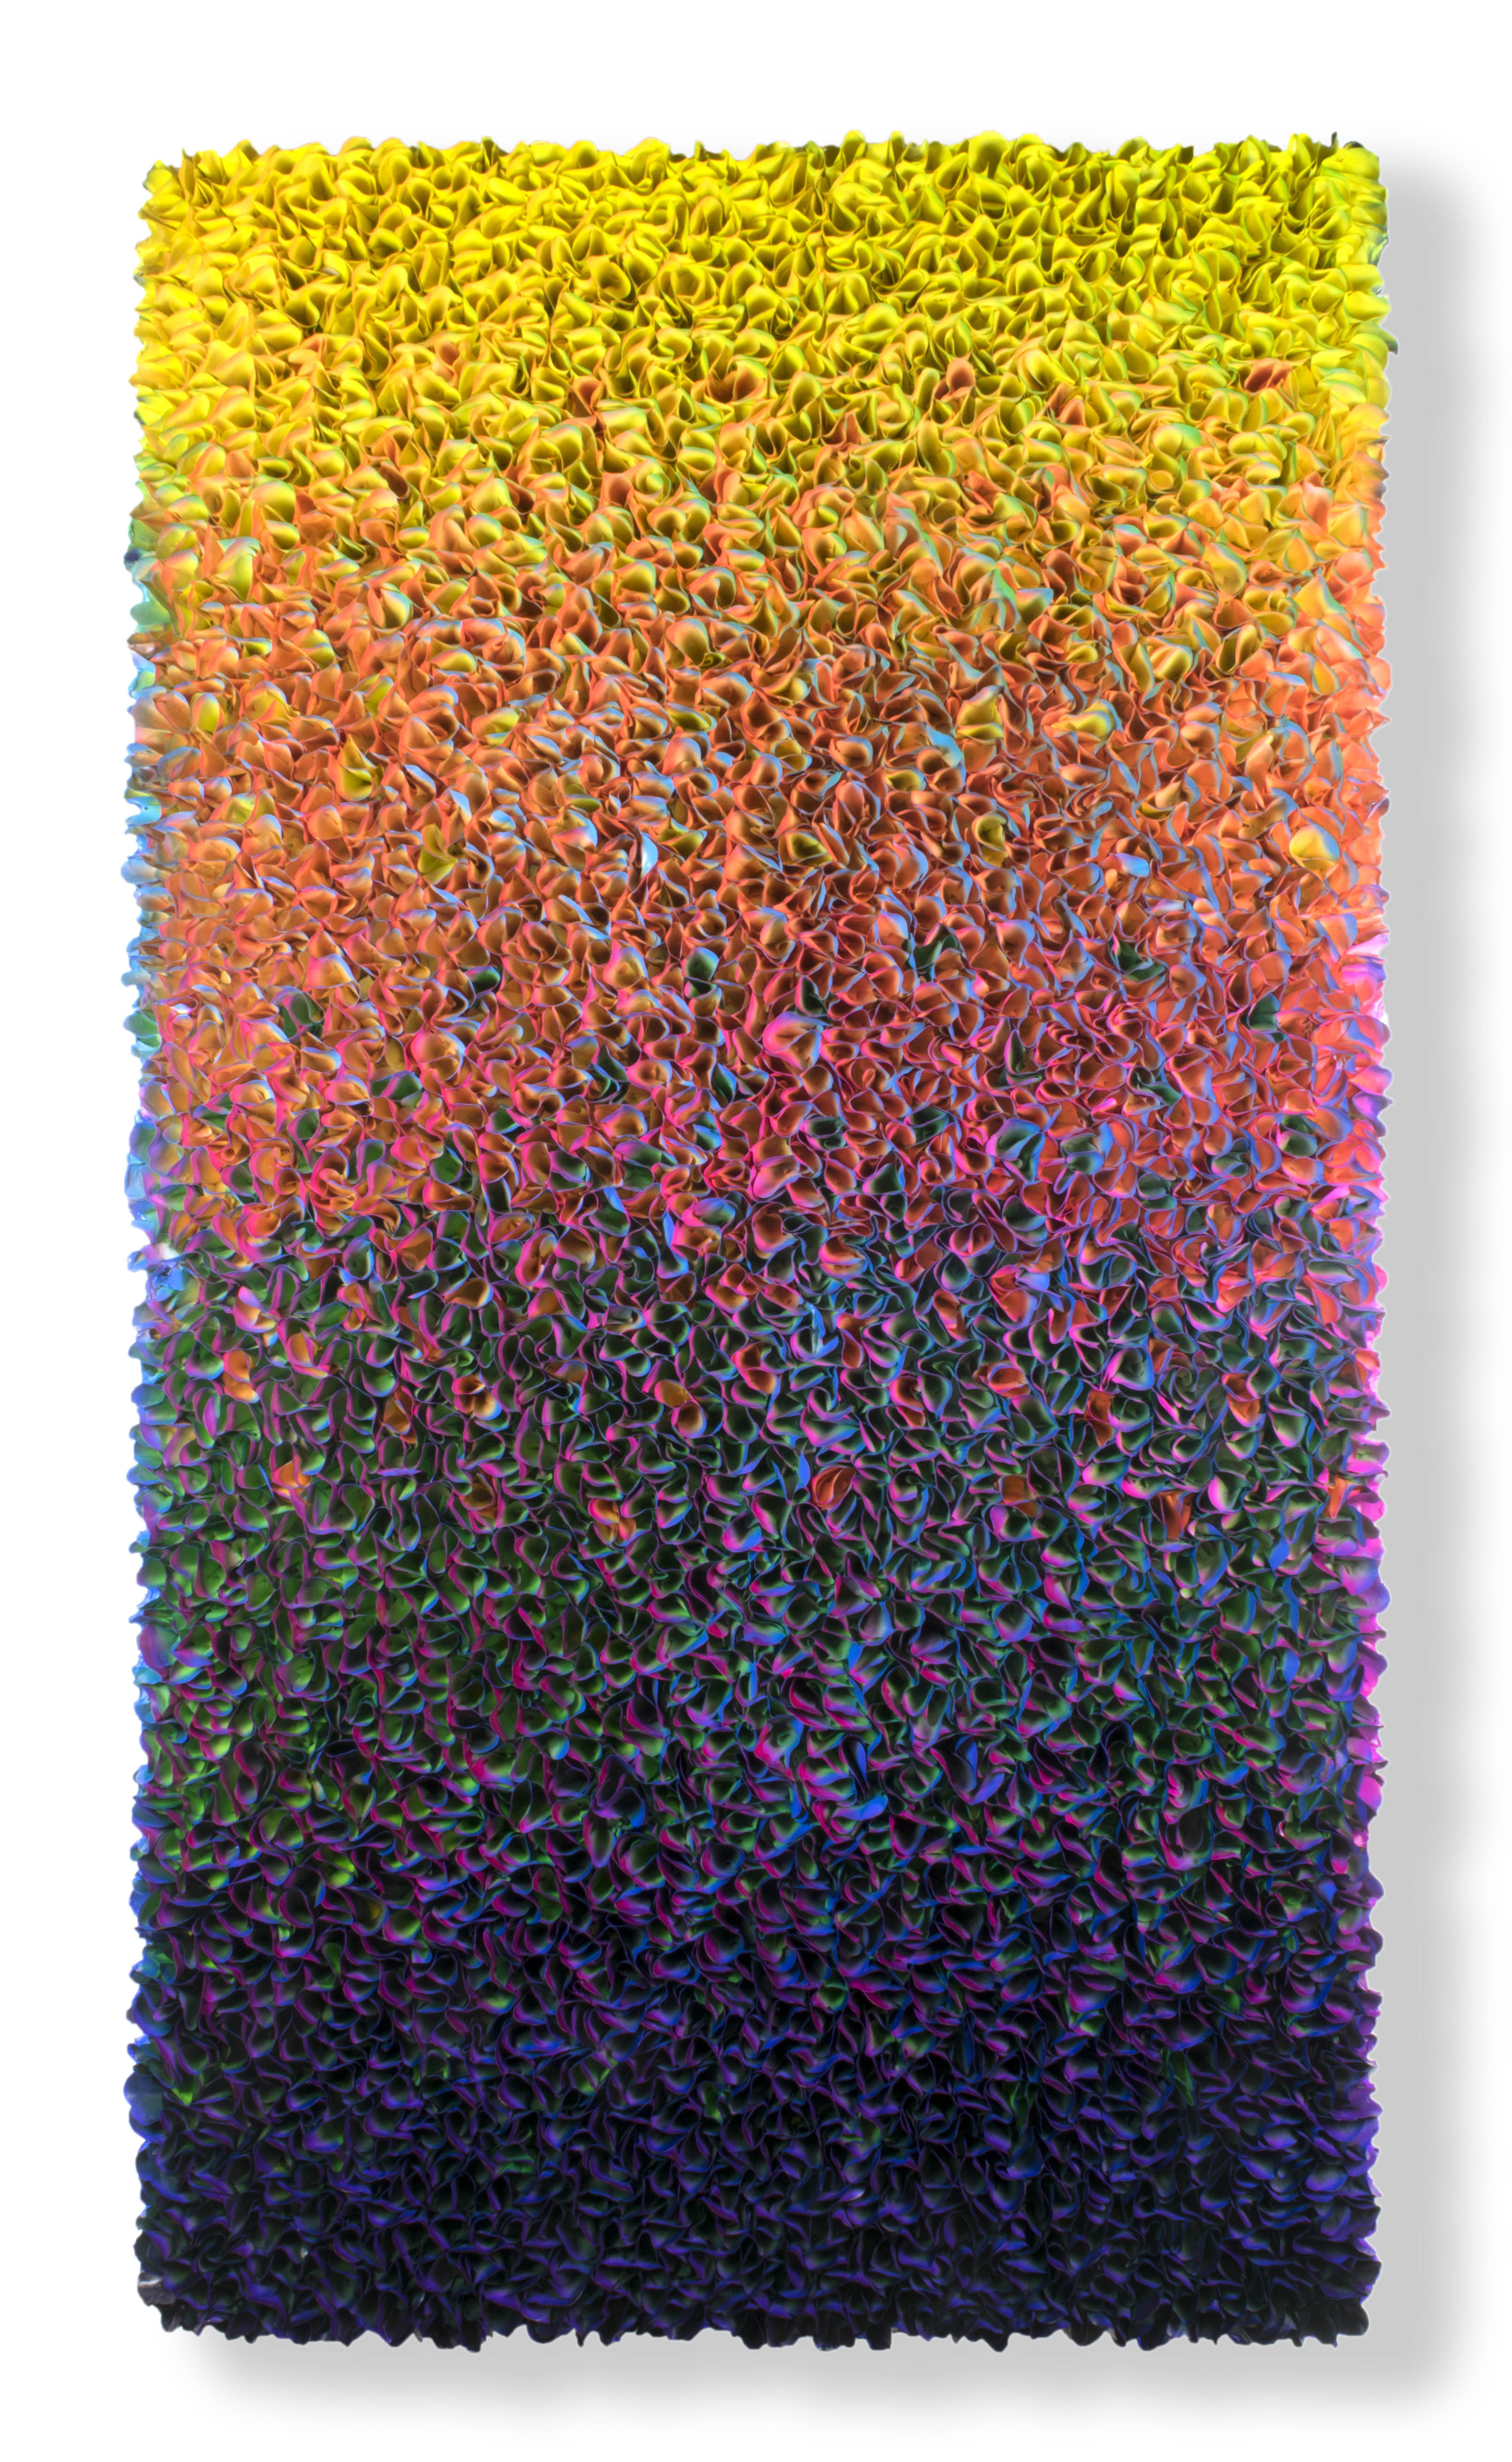 Zhuang Hong Yi, Untitled, 2017, Acrylic on rice paper, 73h x 39w in.